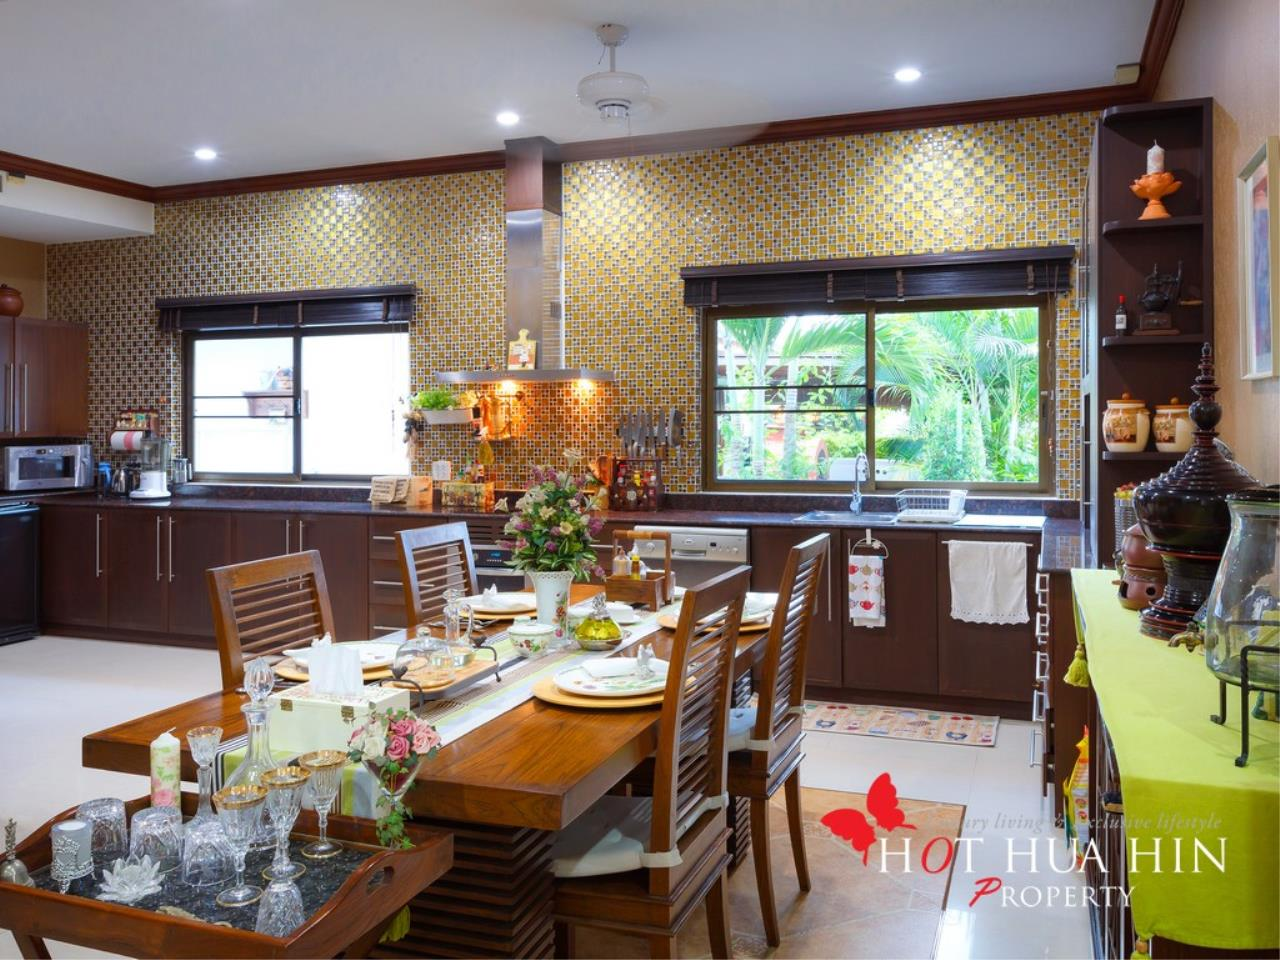 Hot Hua Hin Co. Ltd. Agency's Well Built Home With Stunning Gardens And Two Full Kitchens 7